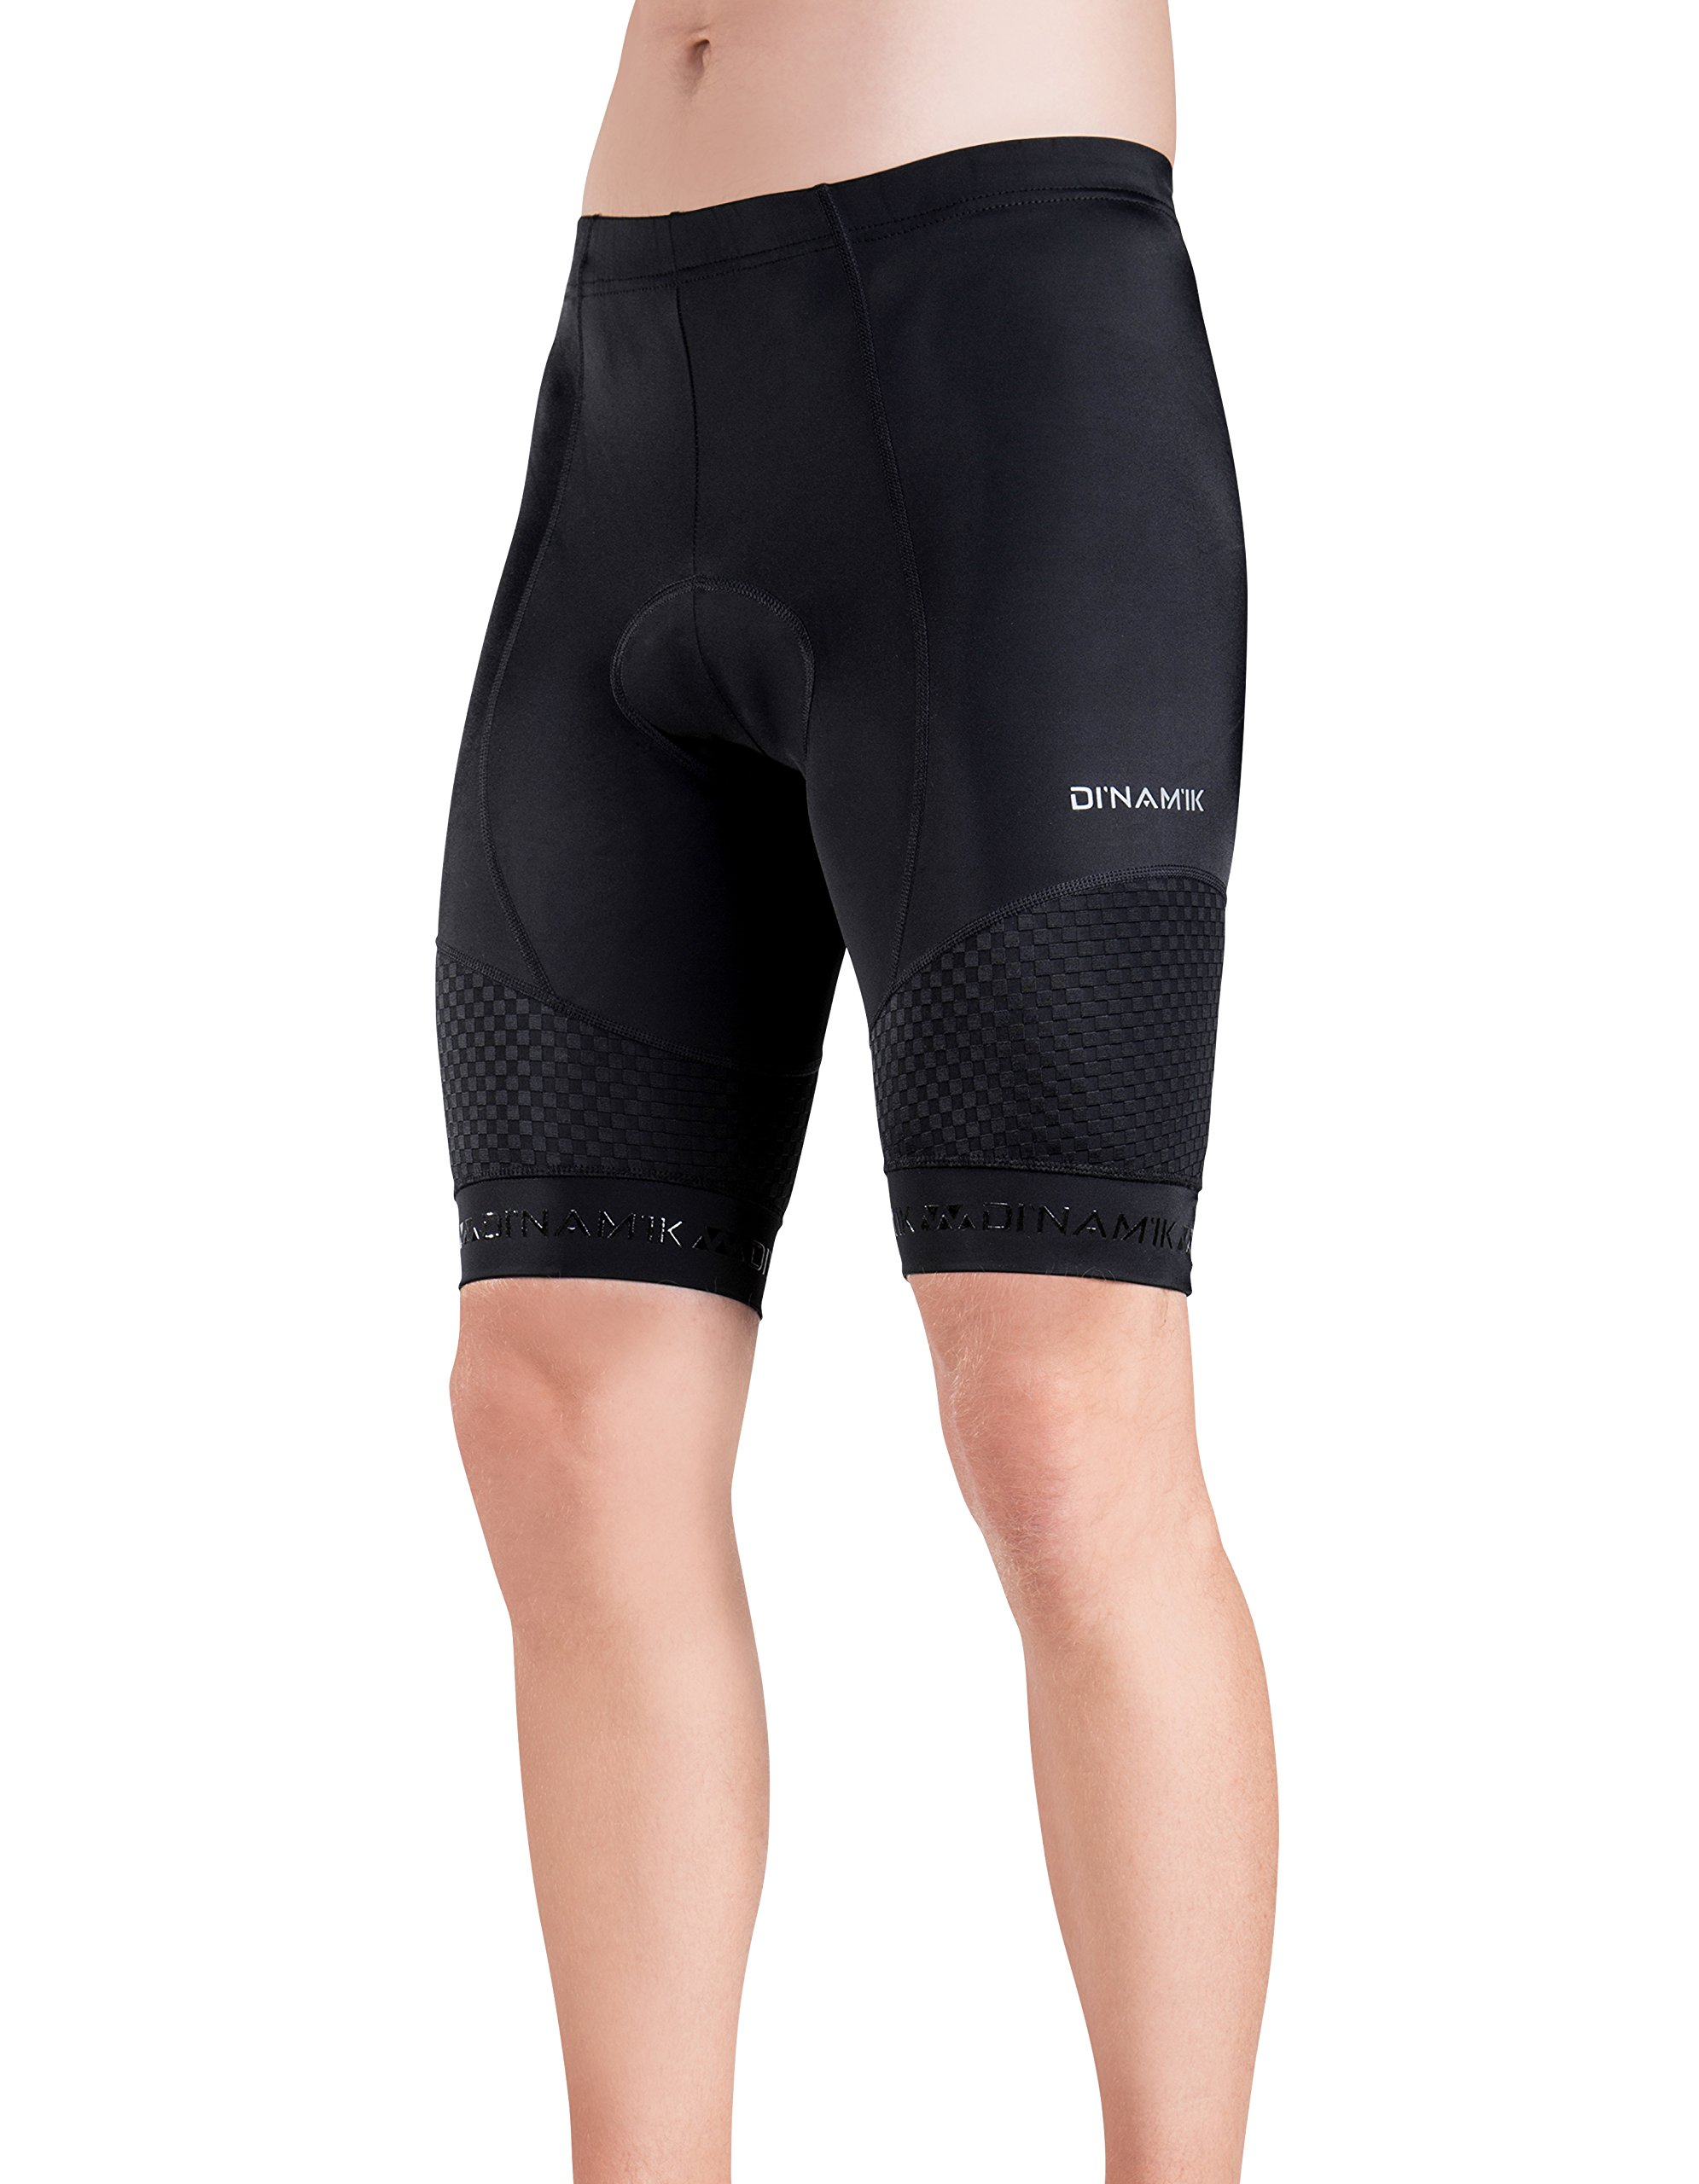 Men's Bike Shorts - Light, breathable, Padded Stretch Cycling shorts